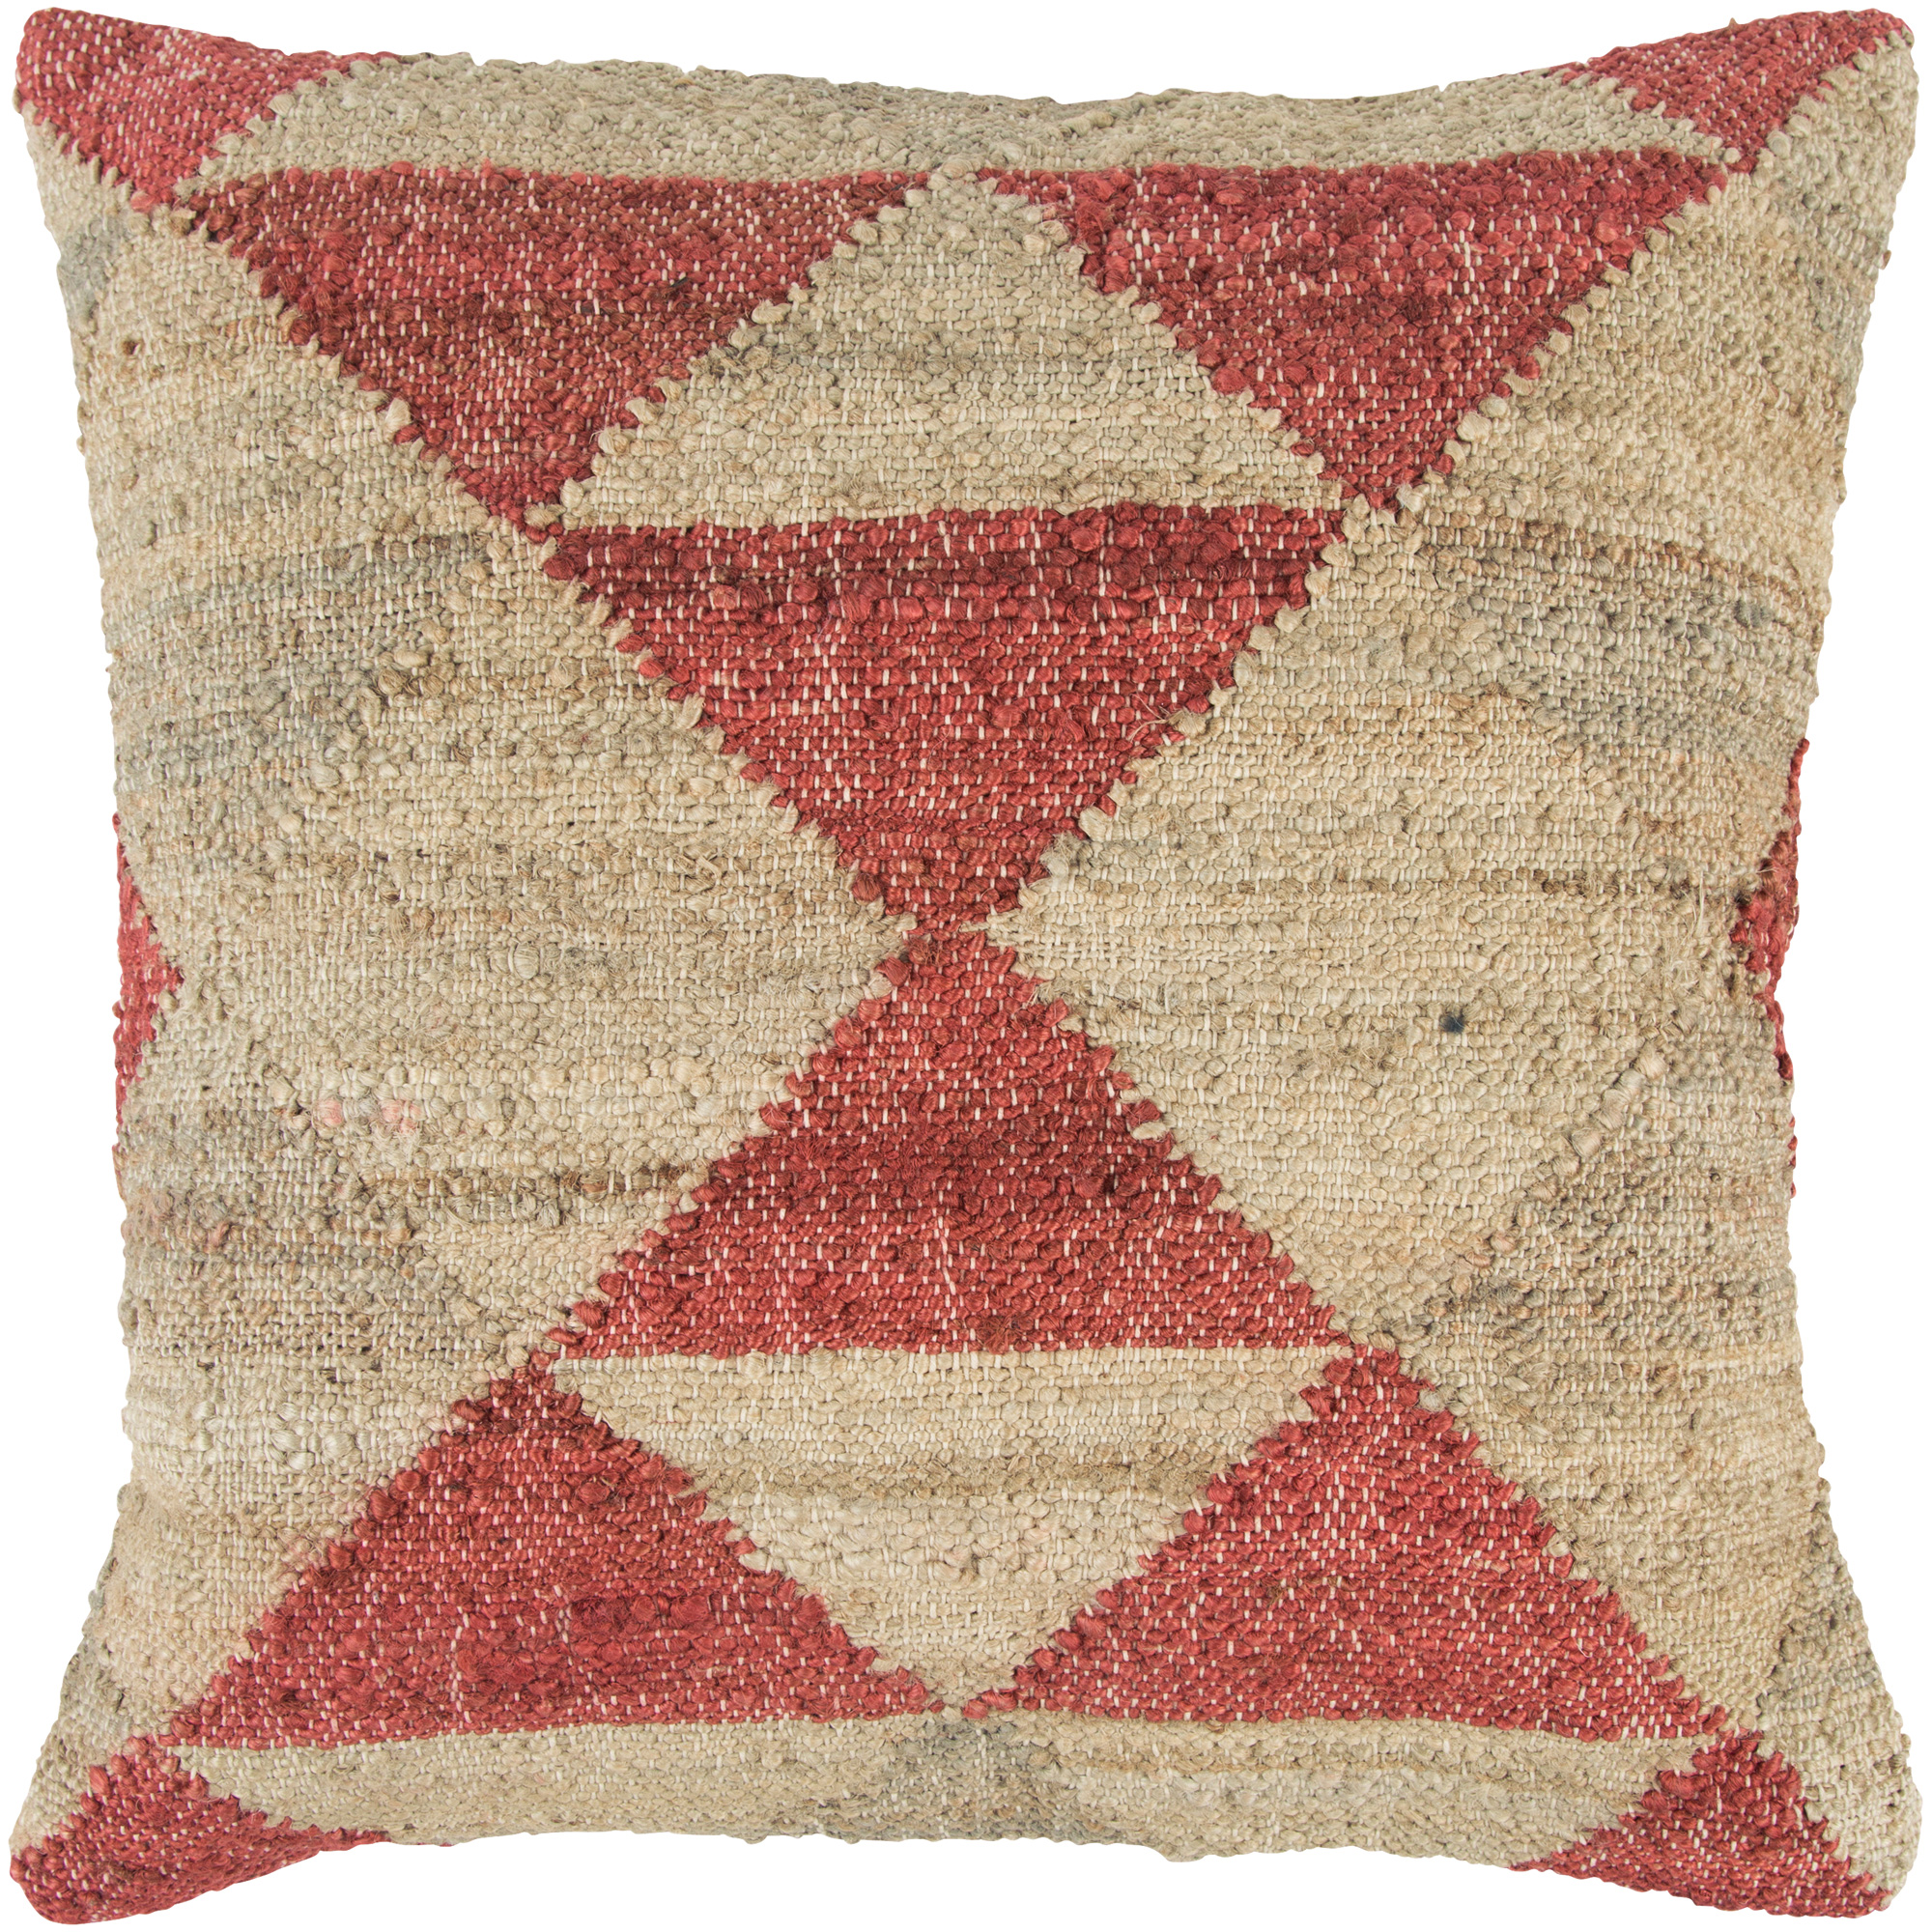 Rizzy Home | Aztec Neutral Vintage Mission Down Pillow | Red